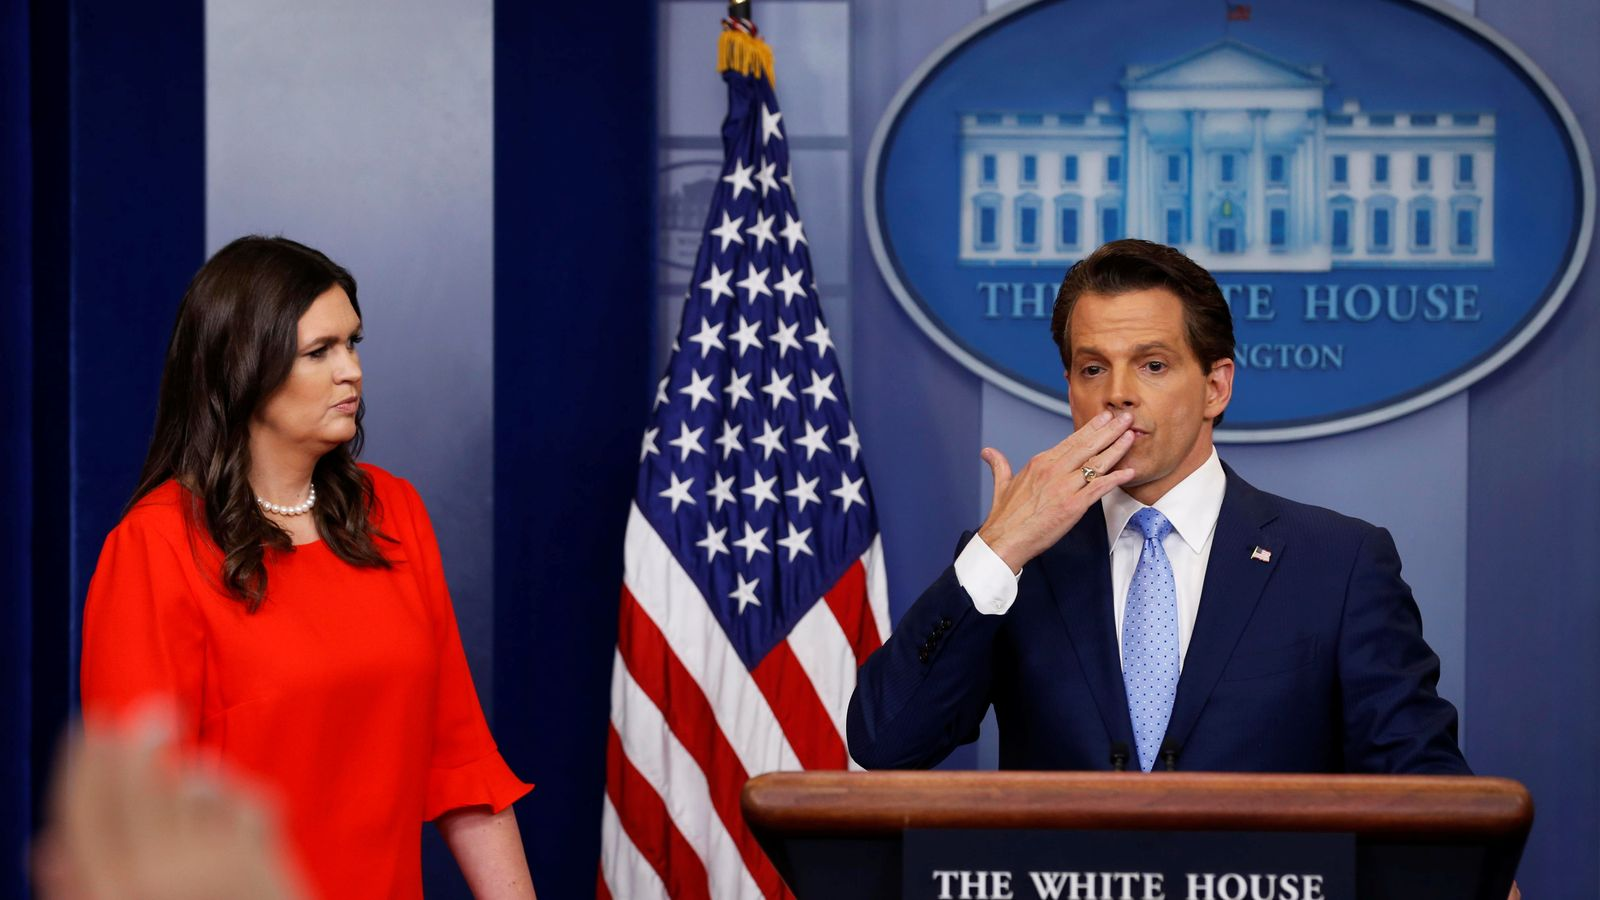 Trump's spin doctor Anthony Scaramucci seals White House ...